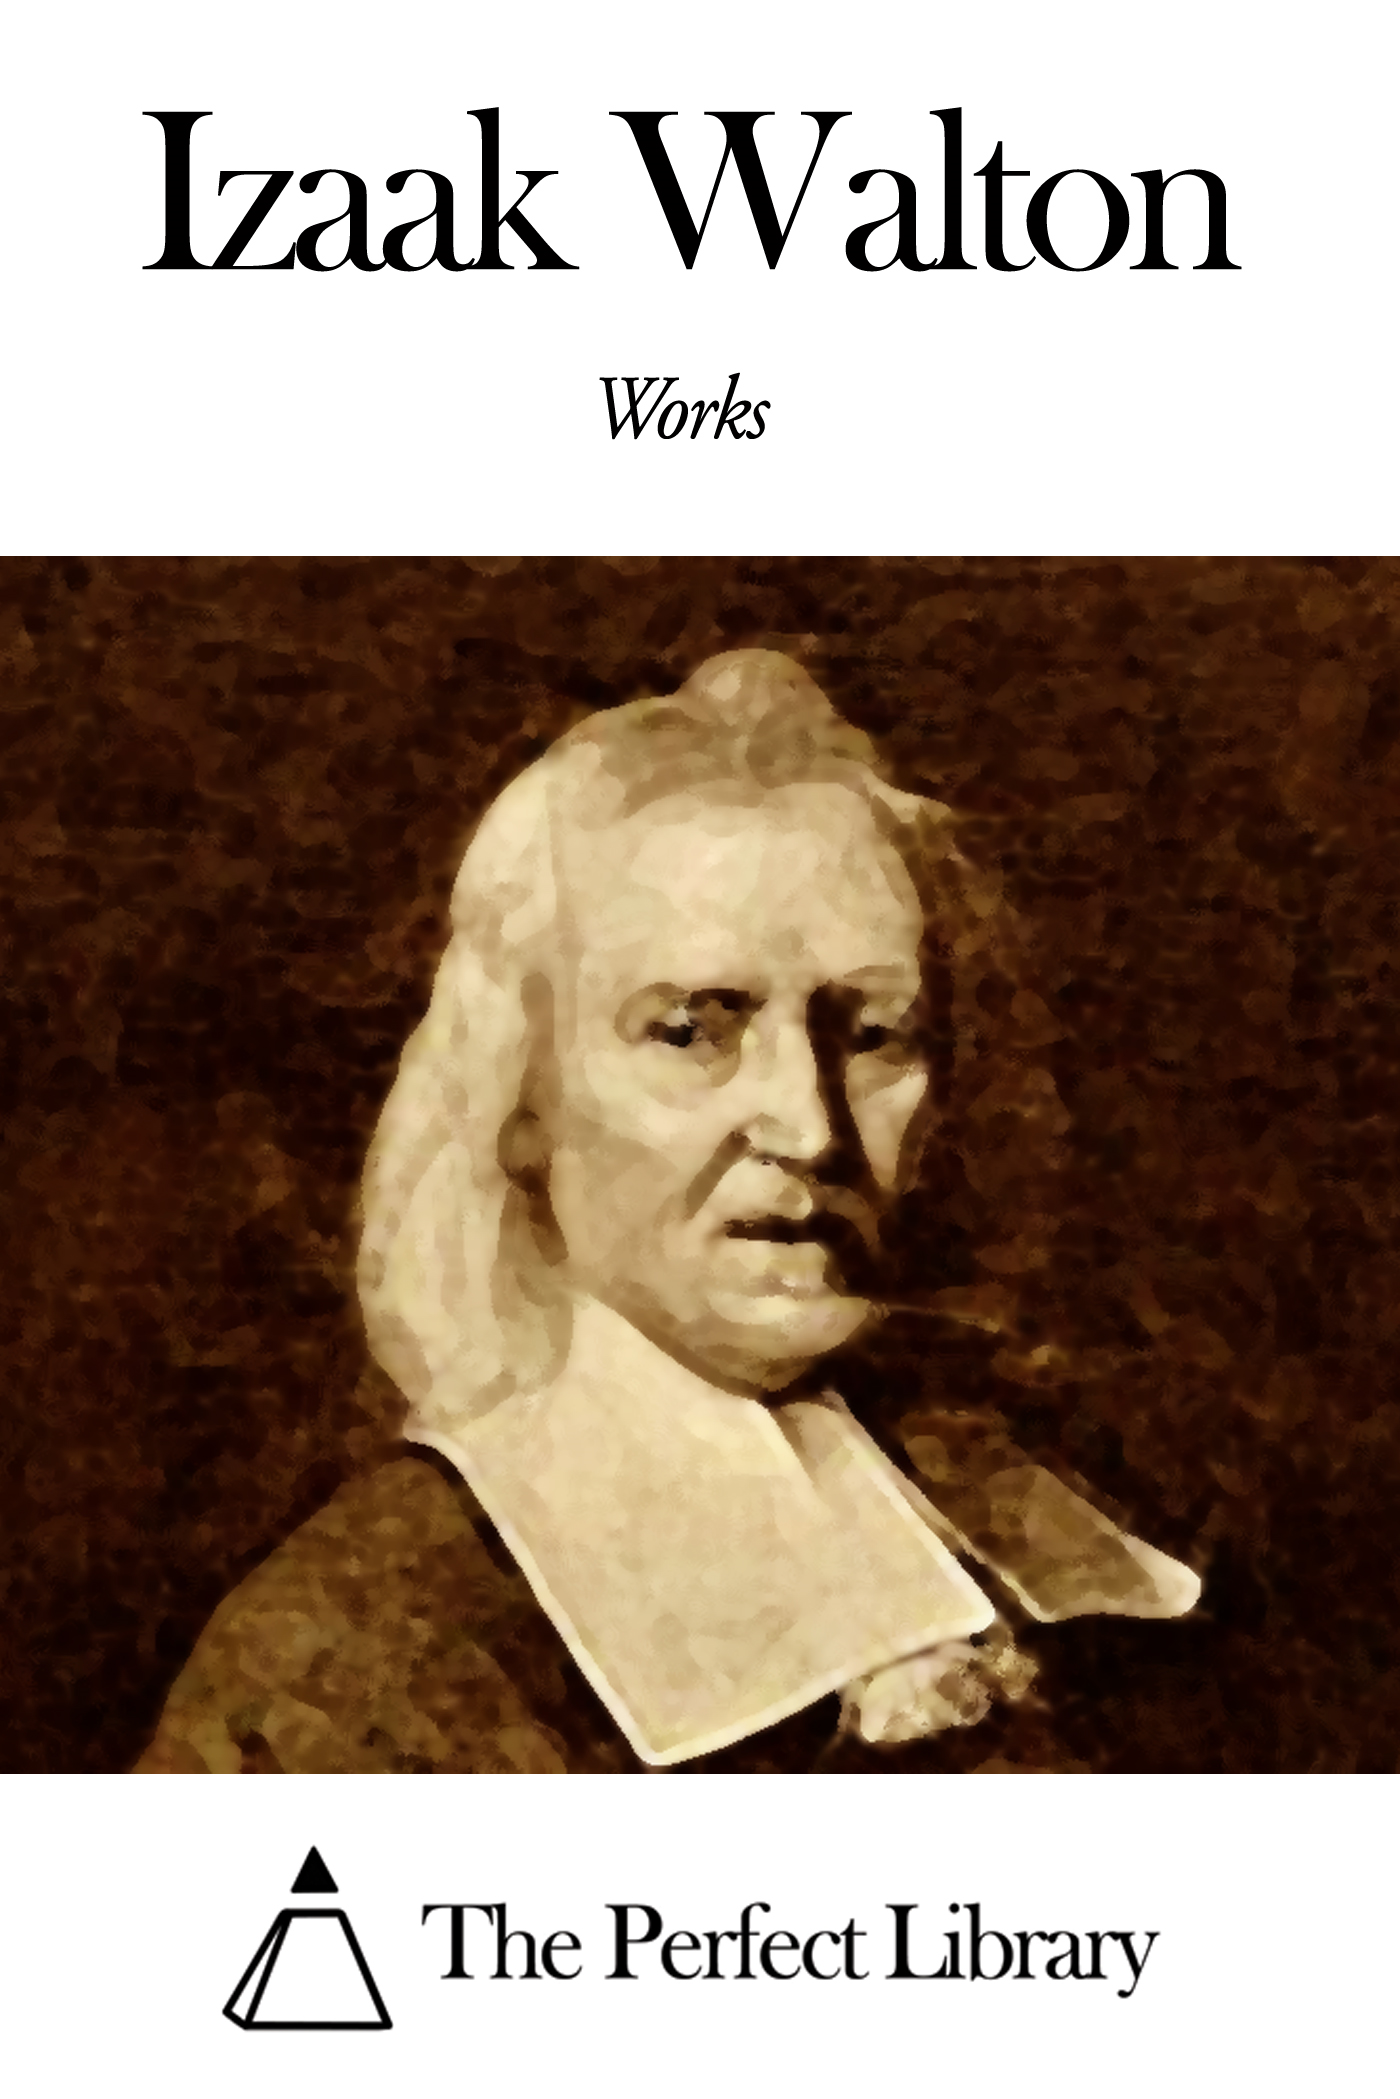 Works of Izaak Walton